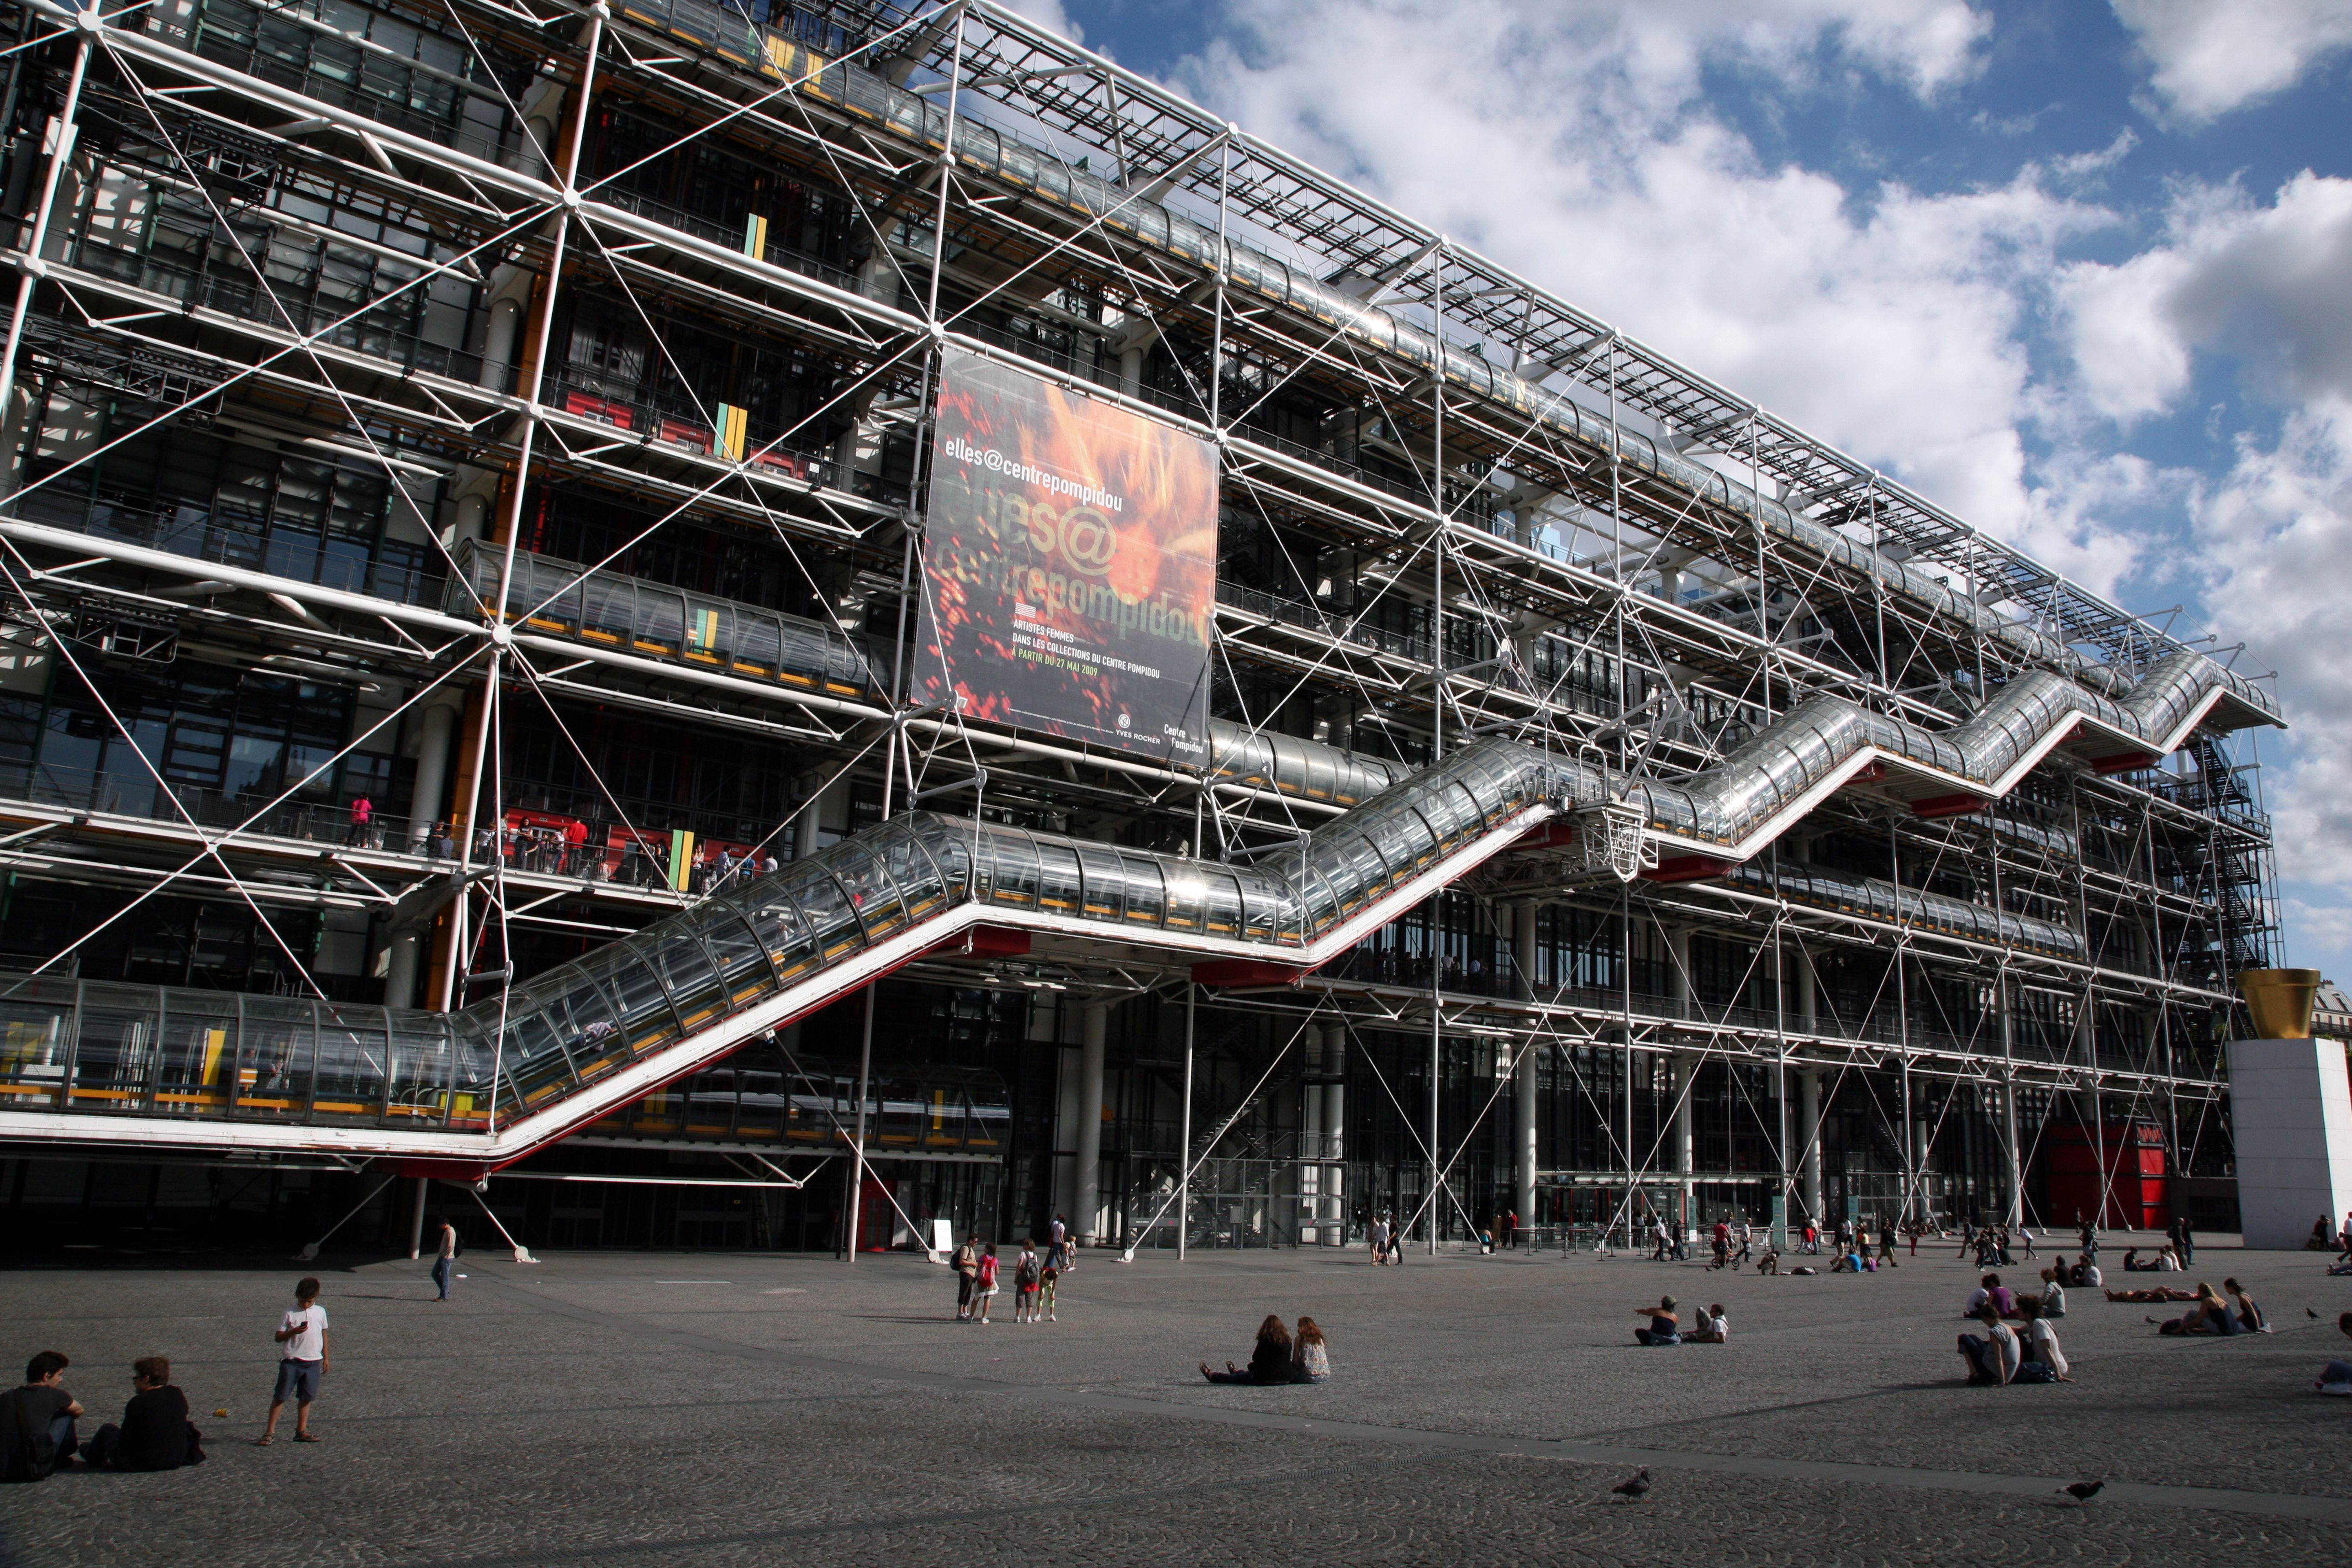 Daniel Buren Painting Attacked at Centre Pompidou, Banksy Work Heads to Auction, and More: Morning Links from September 16, 2019